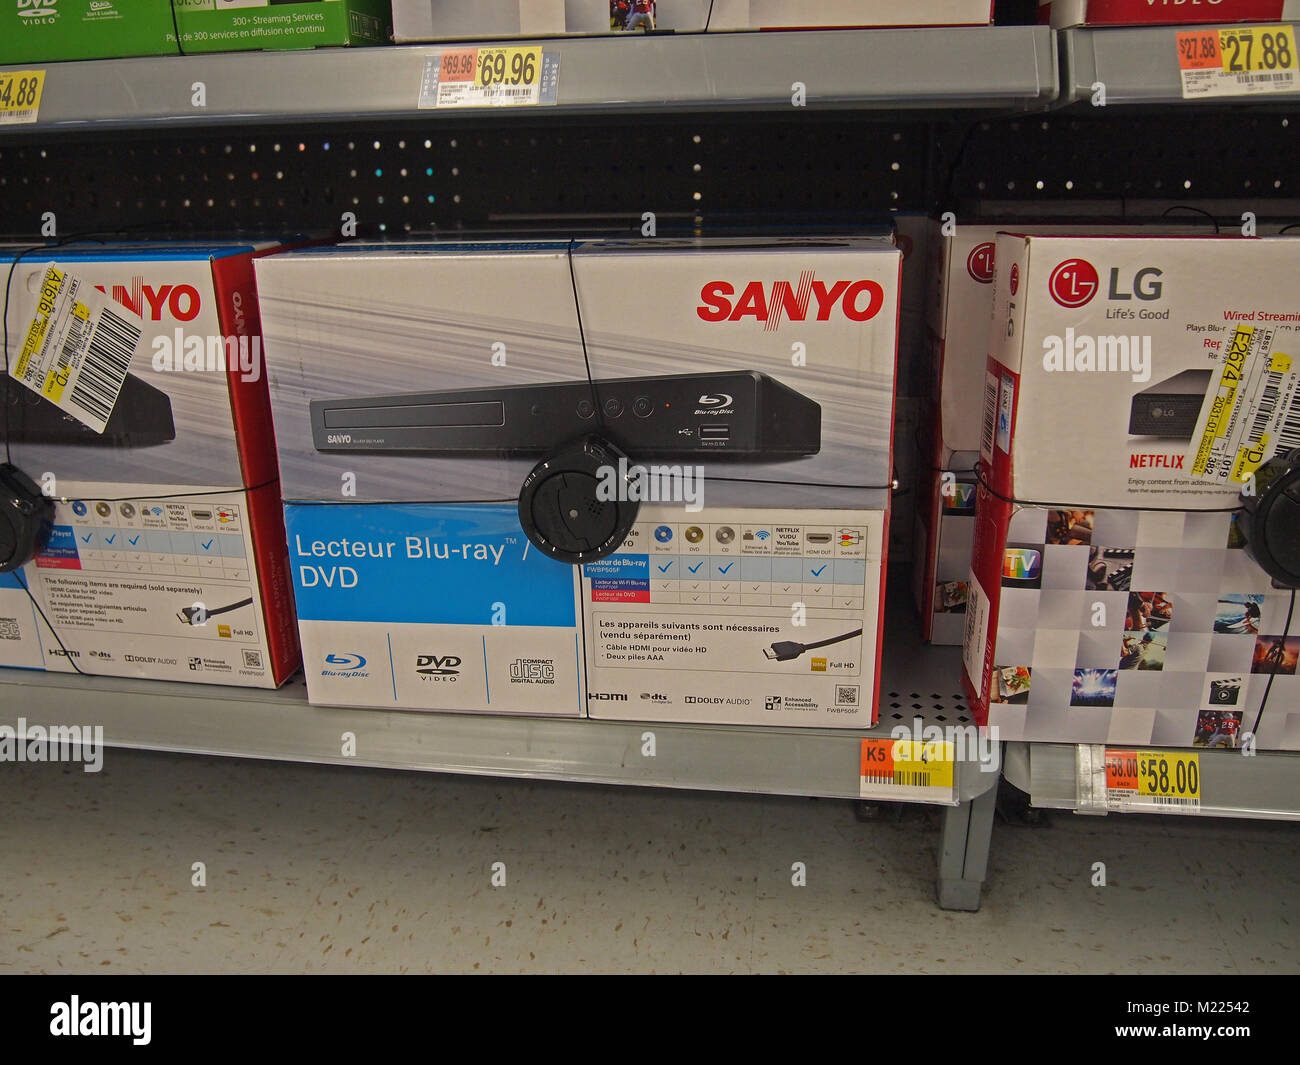 Blu-ray DVD players for sale in a retail store, California - Stock Image